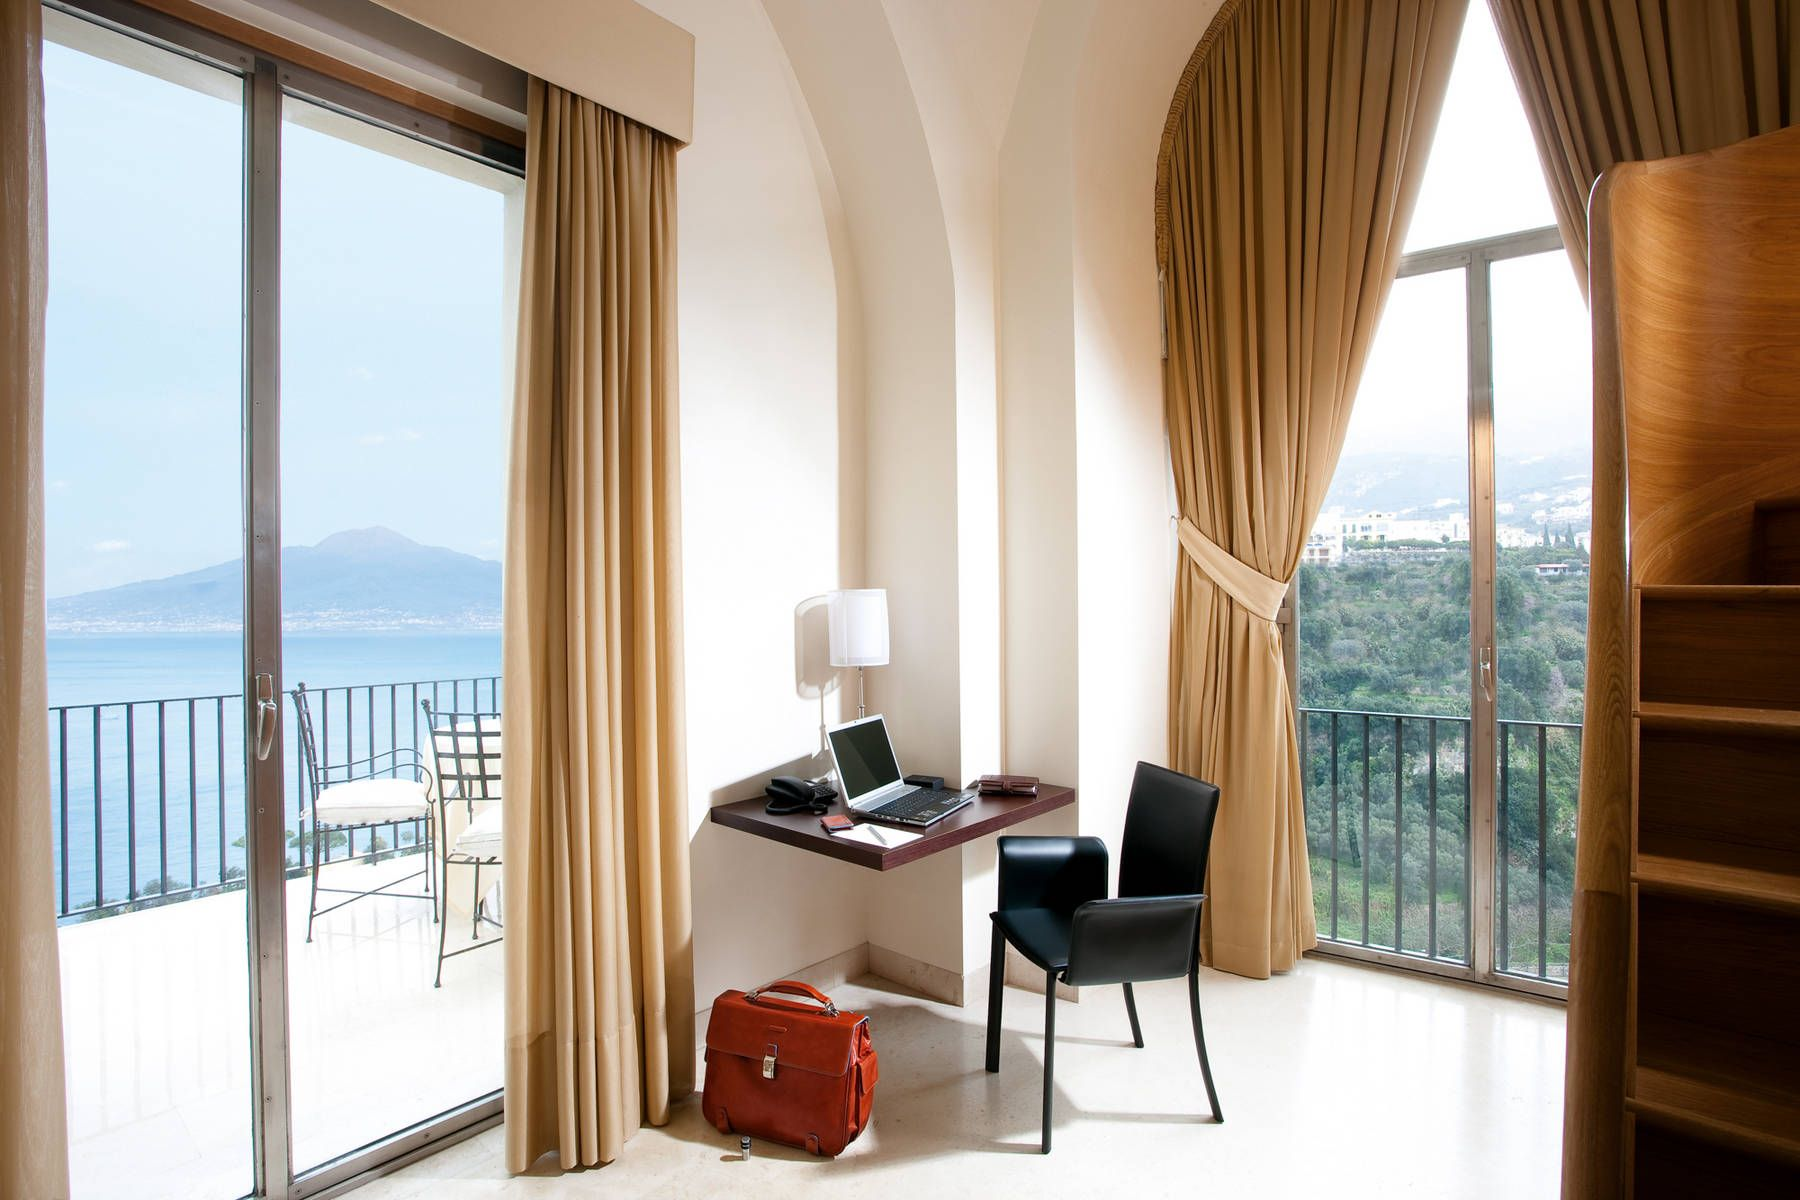 Criseide Sorrento Hotel Grand Hotel Angiolieri 5 Stars Accommodation